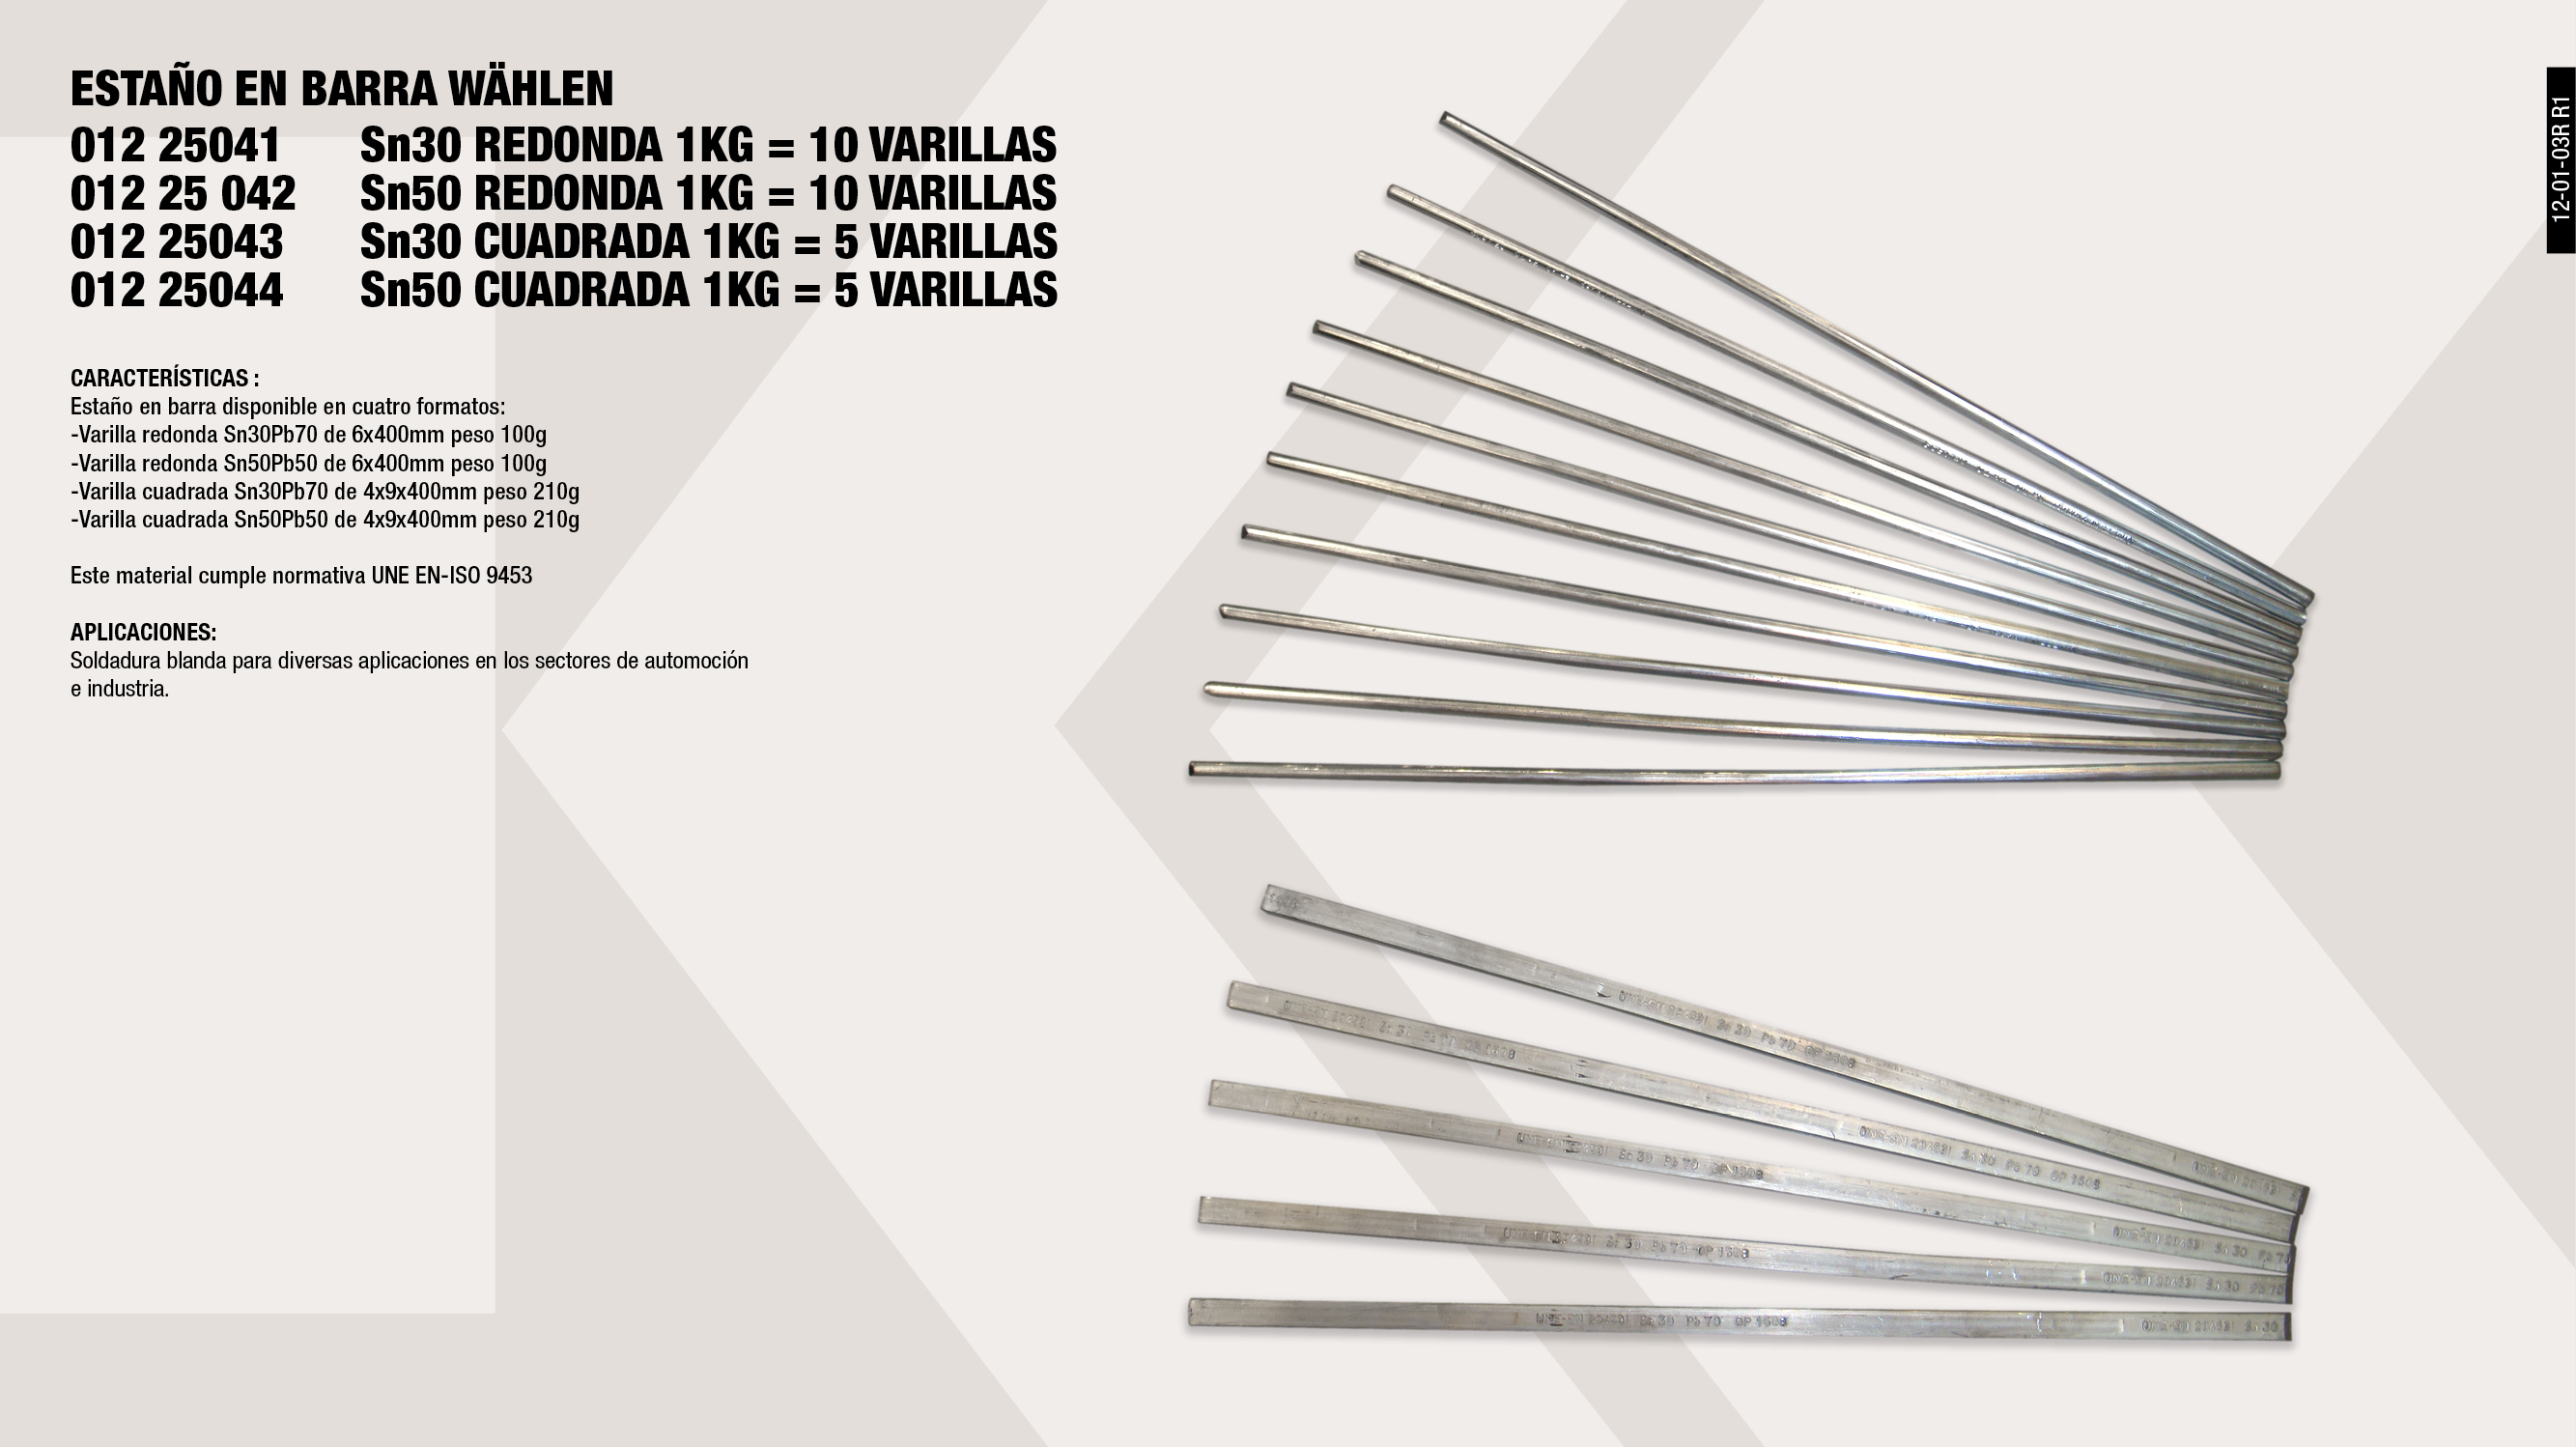 BARRAS ESTAÑO 1KG 50 RED 6X400MM WAHLEN                     ,  									BARRAS ESTAÑO 1KG 30 RED 6X400MM WAHLEN                     ,  									BARRAS ESTAÑO 1KG 30 CUAD 4X9MM WAHLEN                      ,  									BARRAS ESTAÑO 1KG 50 CUAD 4X9MM WAHLEN                      ,